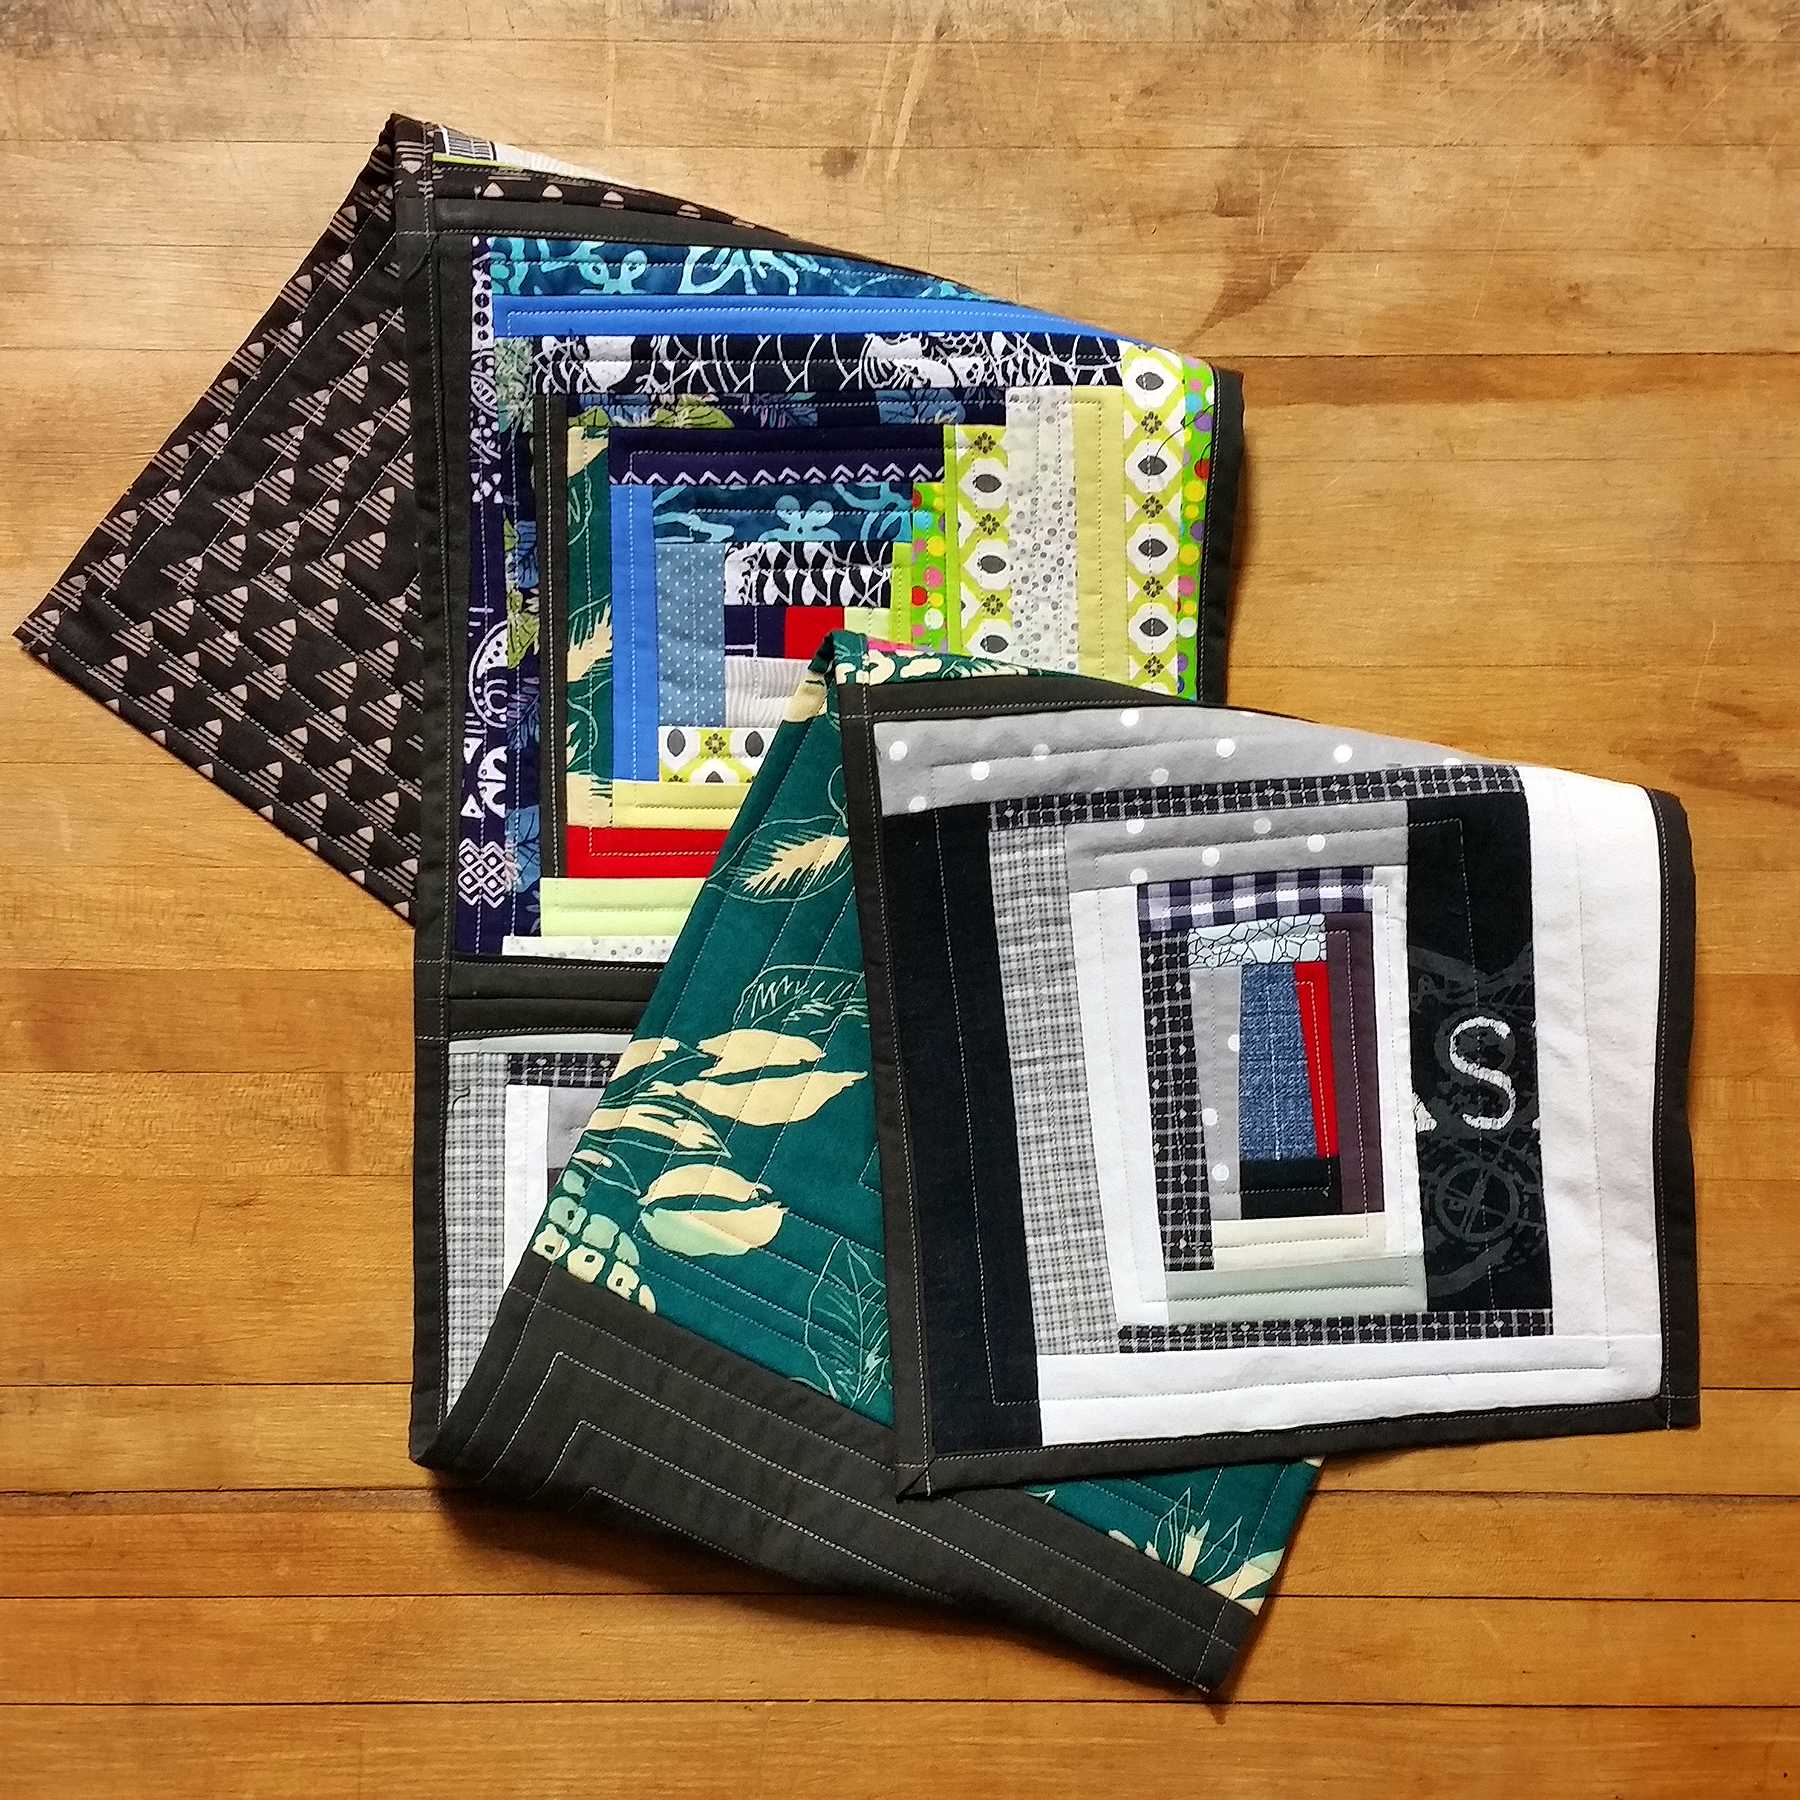 Atlee Quilt Diary 201702 folded hires.jpg